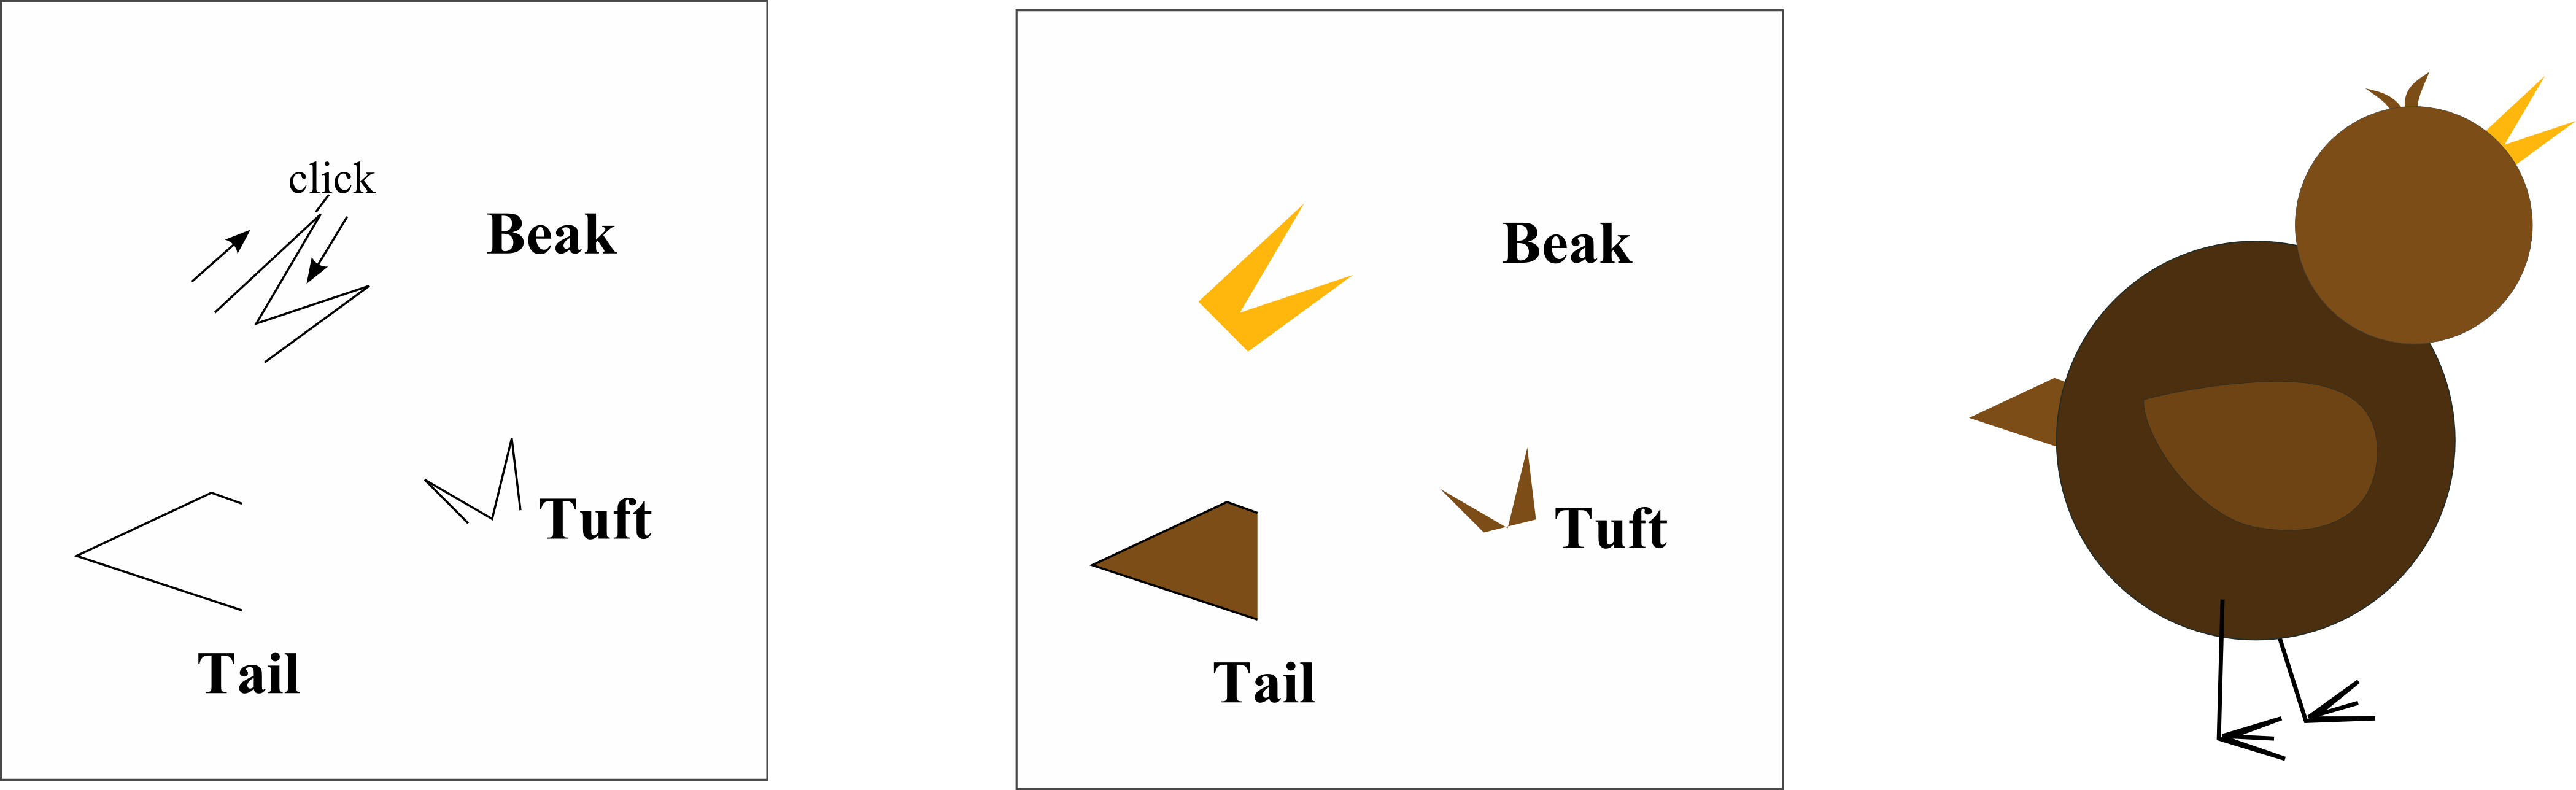 examples of tail, beak, tuft and feet